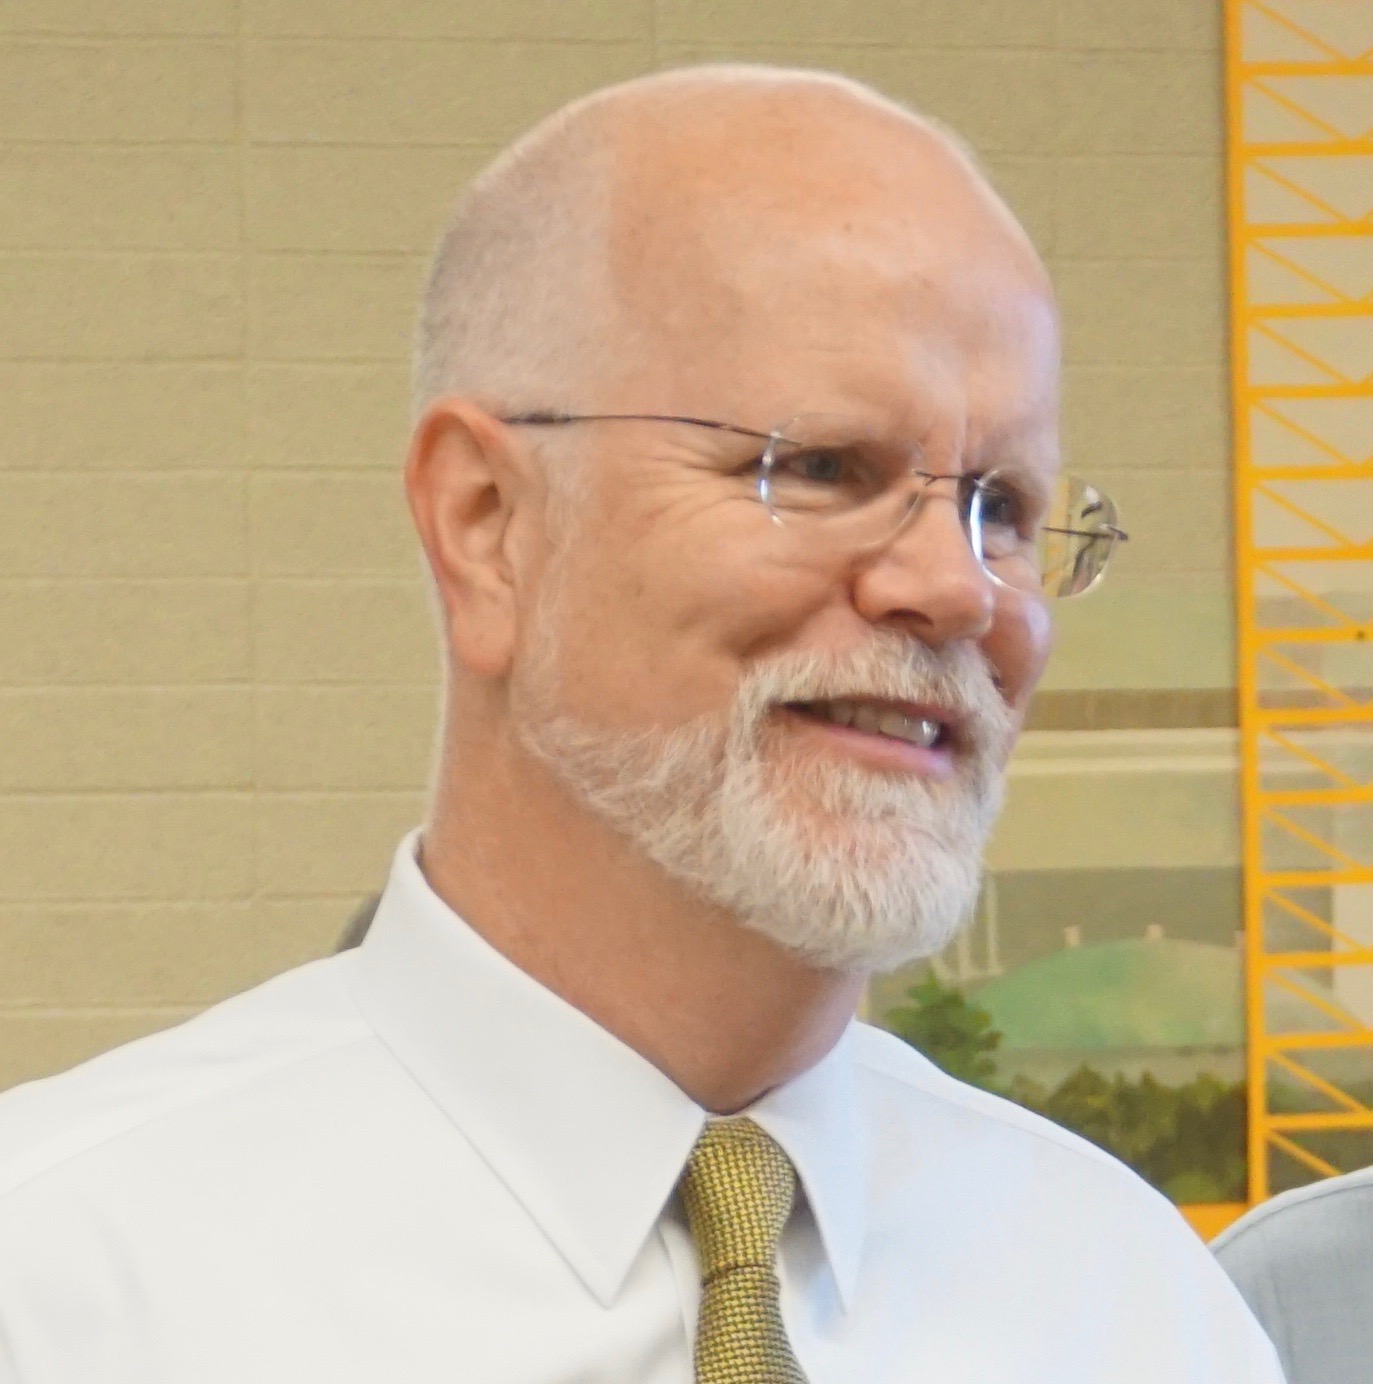 Lembo reports a balanced budget – but has big concerns